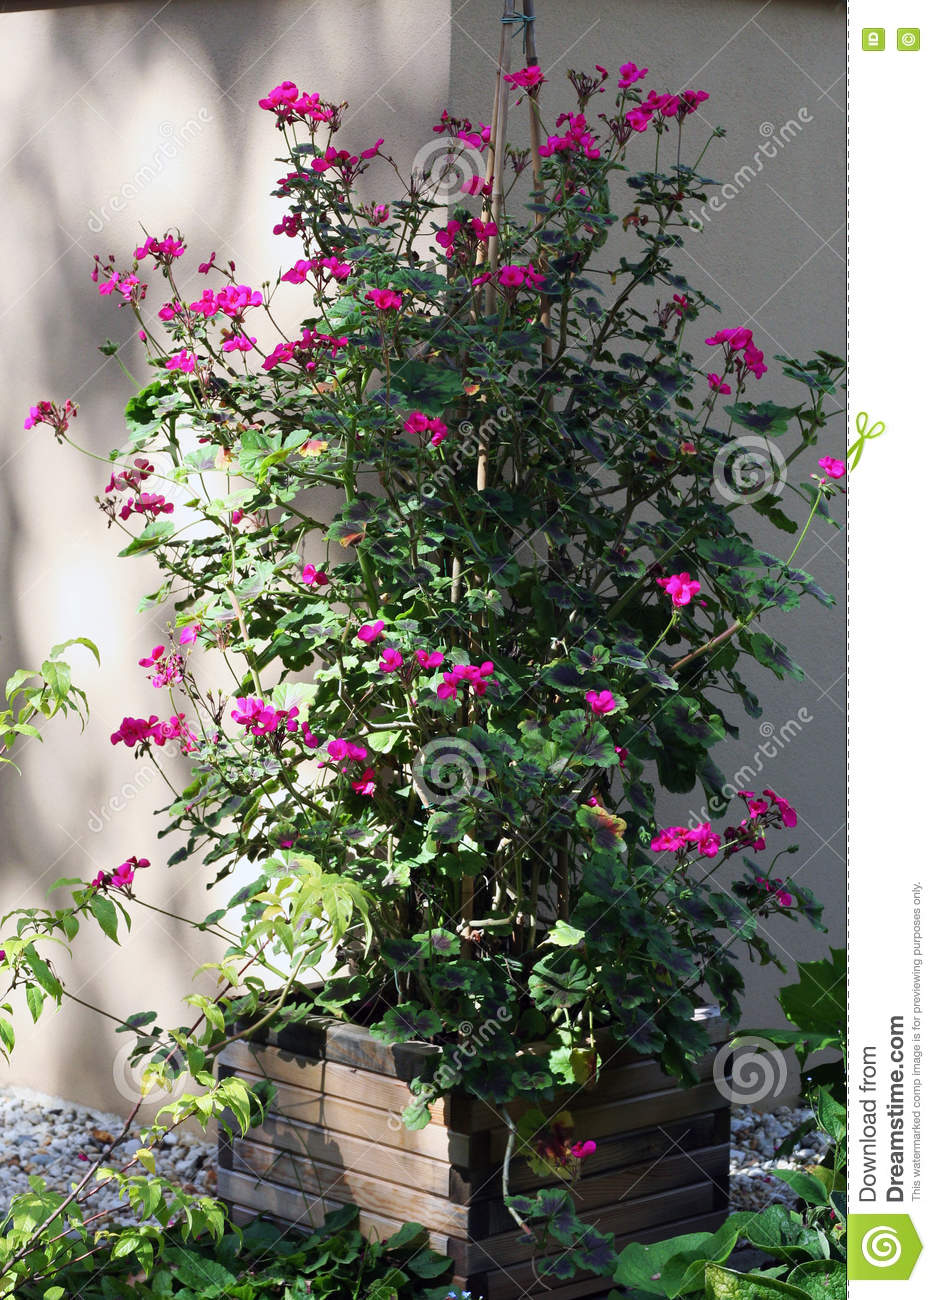 Climbing Pelargonium Plants Stock Photo Image 68937564